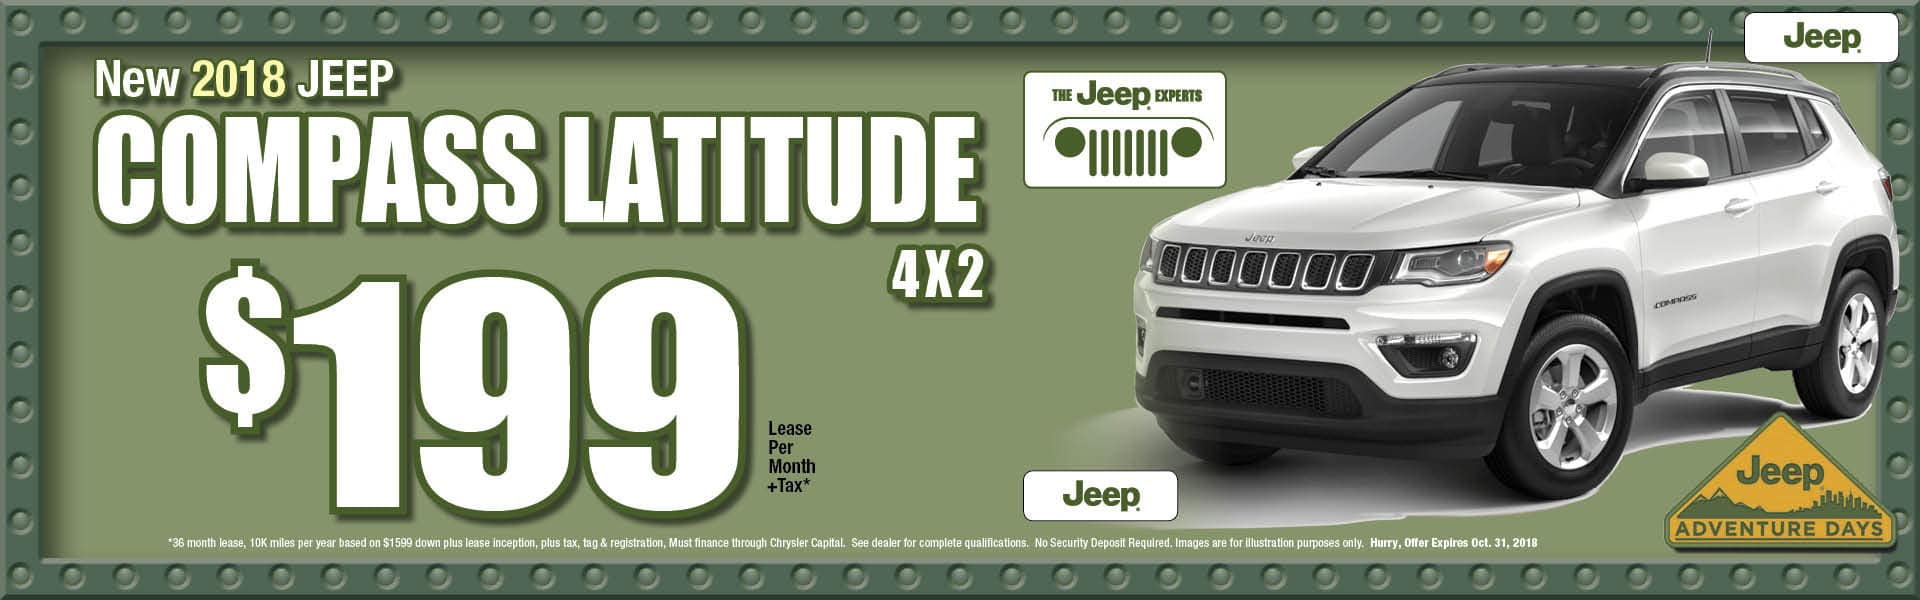 Compass Latitude FWD $199 Lease